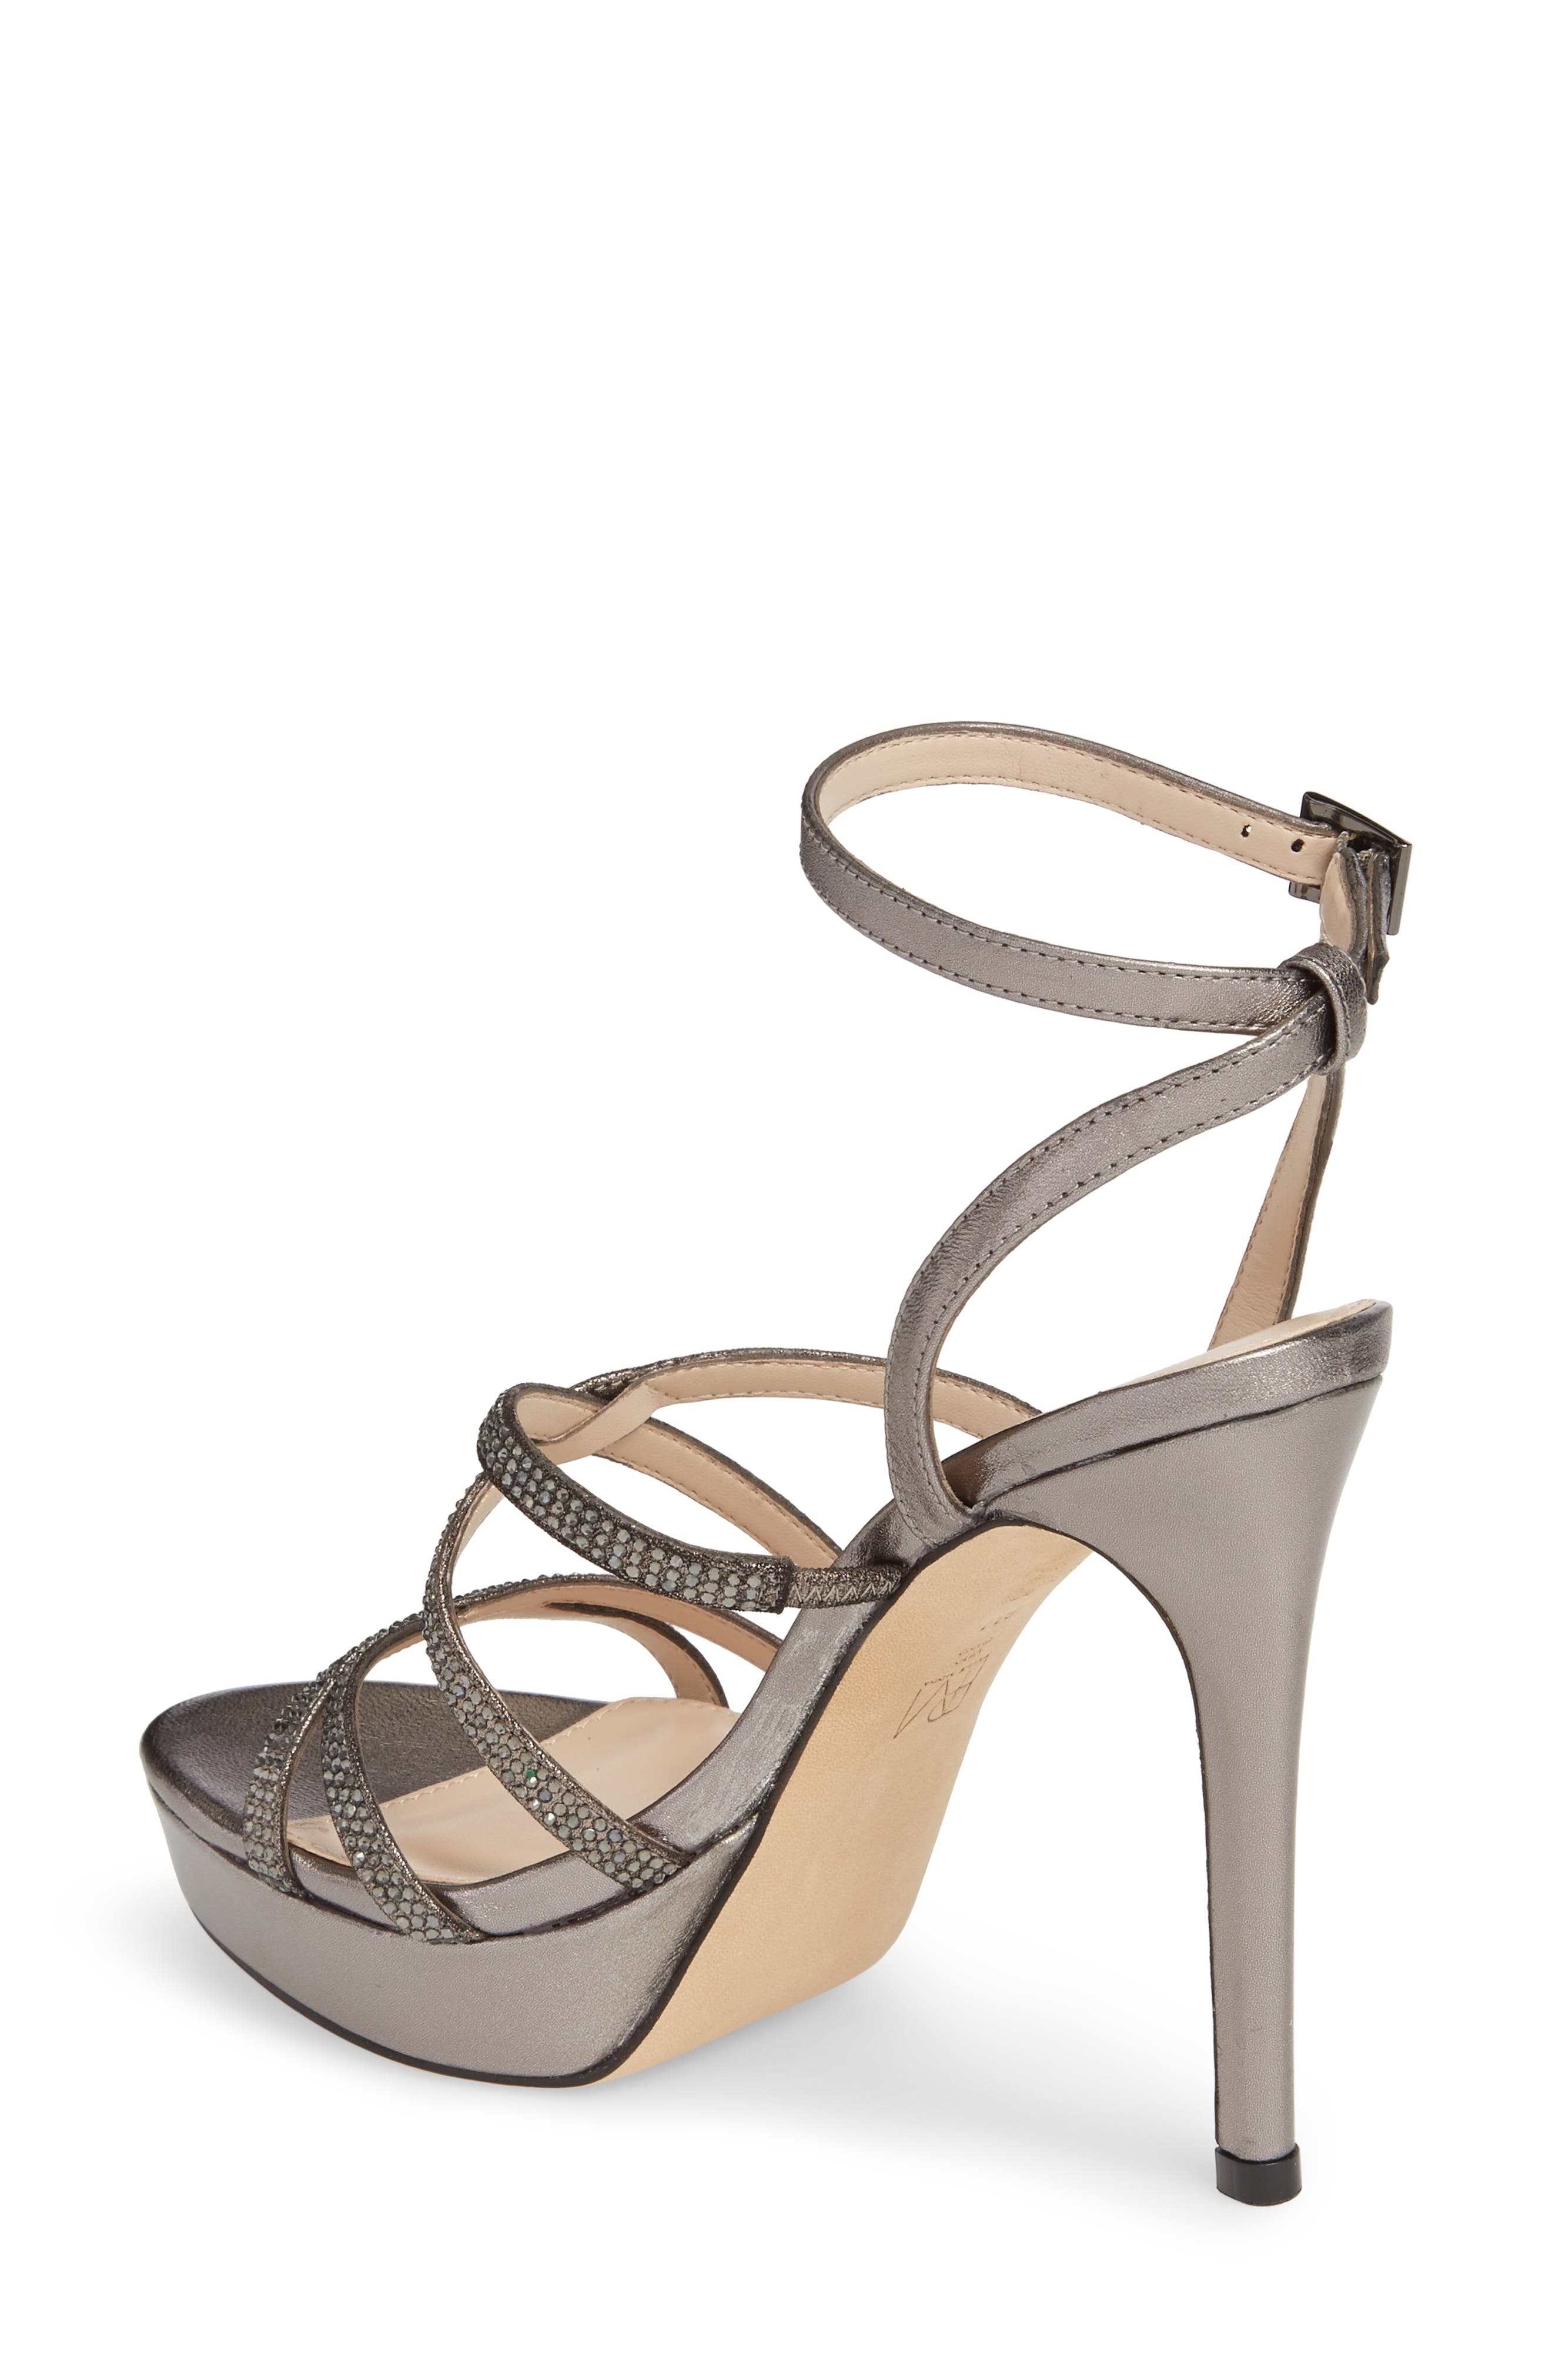 Oak Platform Sandal,                             Alternate thumbnail 2, color,                             Pewter Metallic Suede